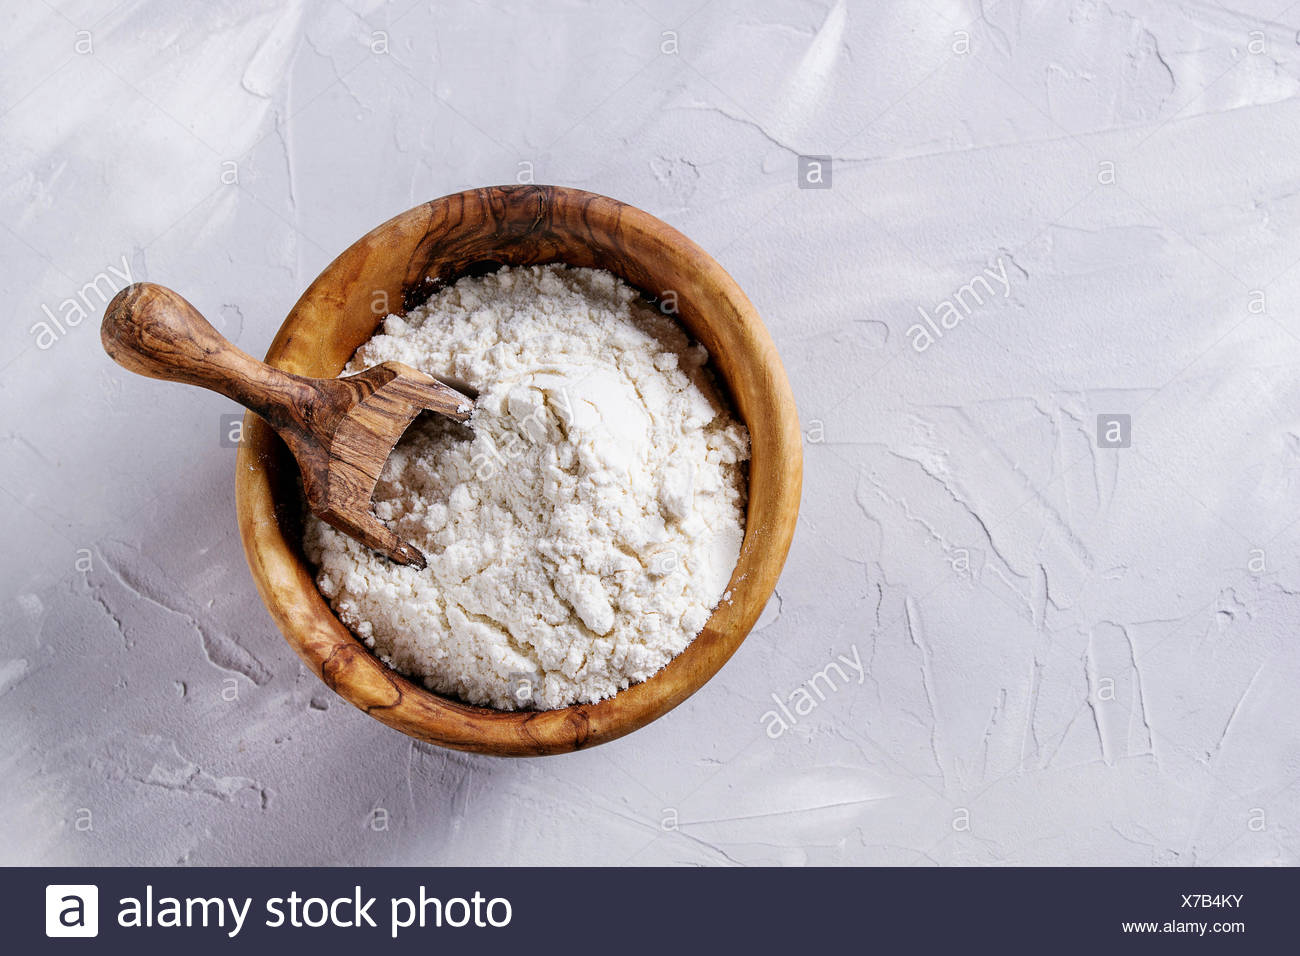 Olive wood bowl with wheat flour and scoop for home baking. Over gray concrete background. Top view, copy space - Stock Image